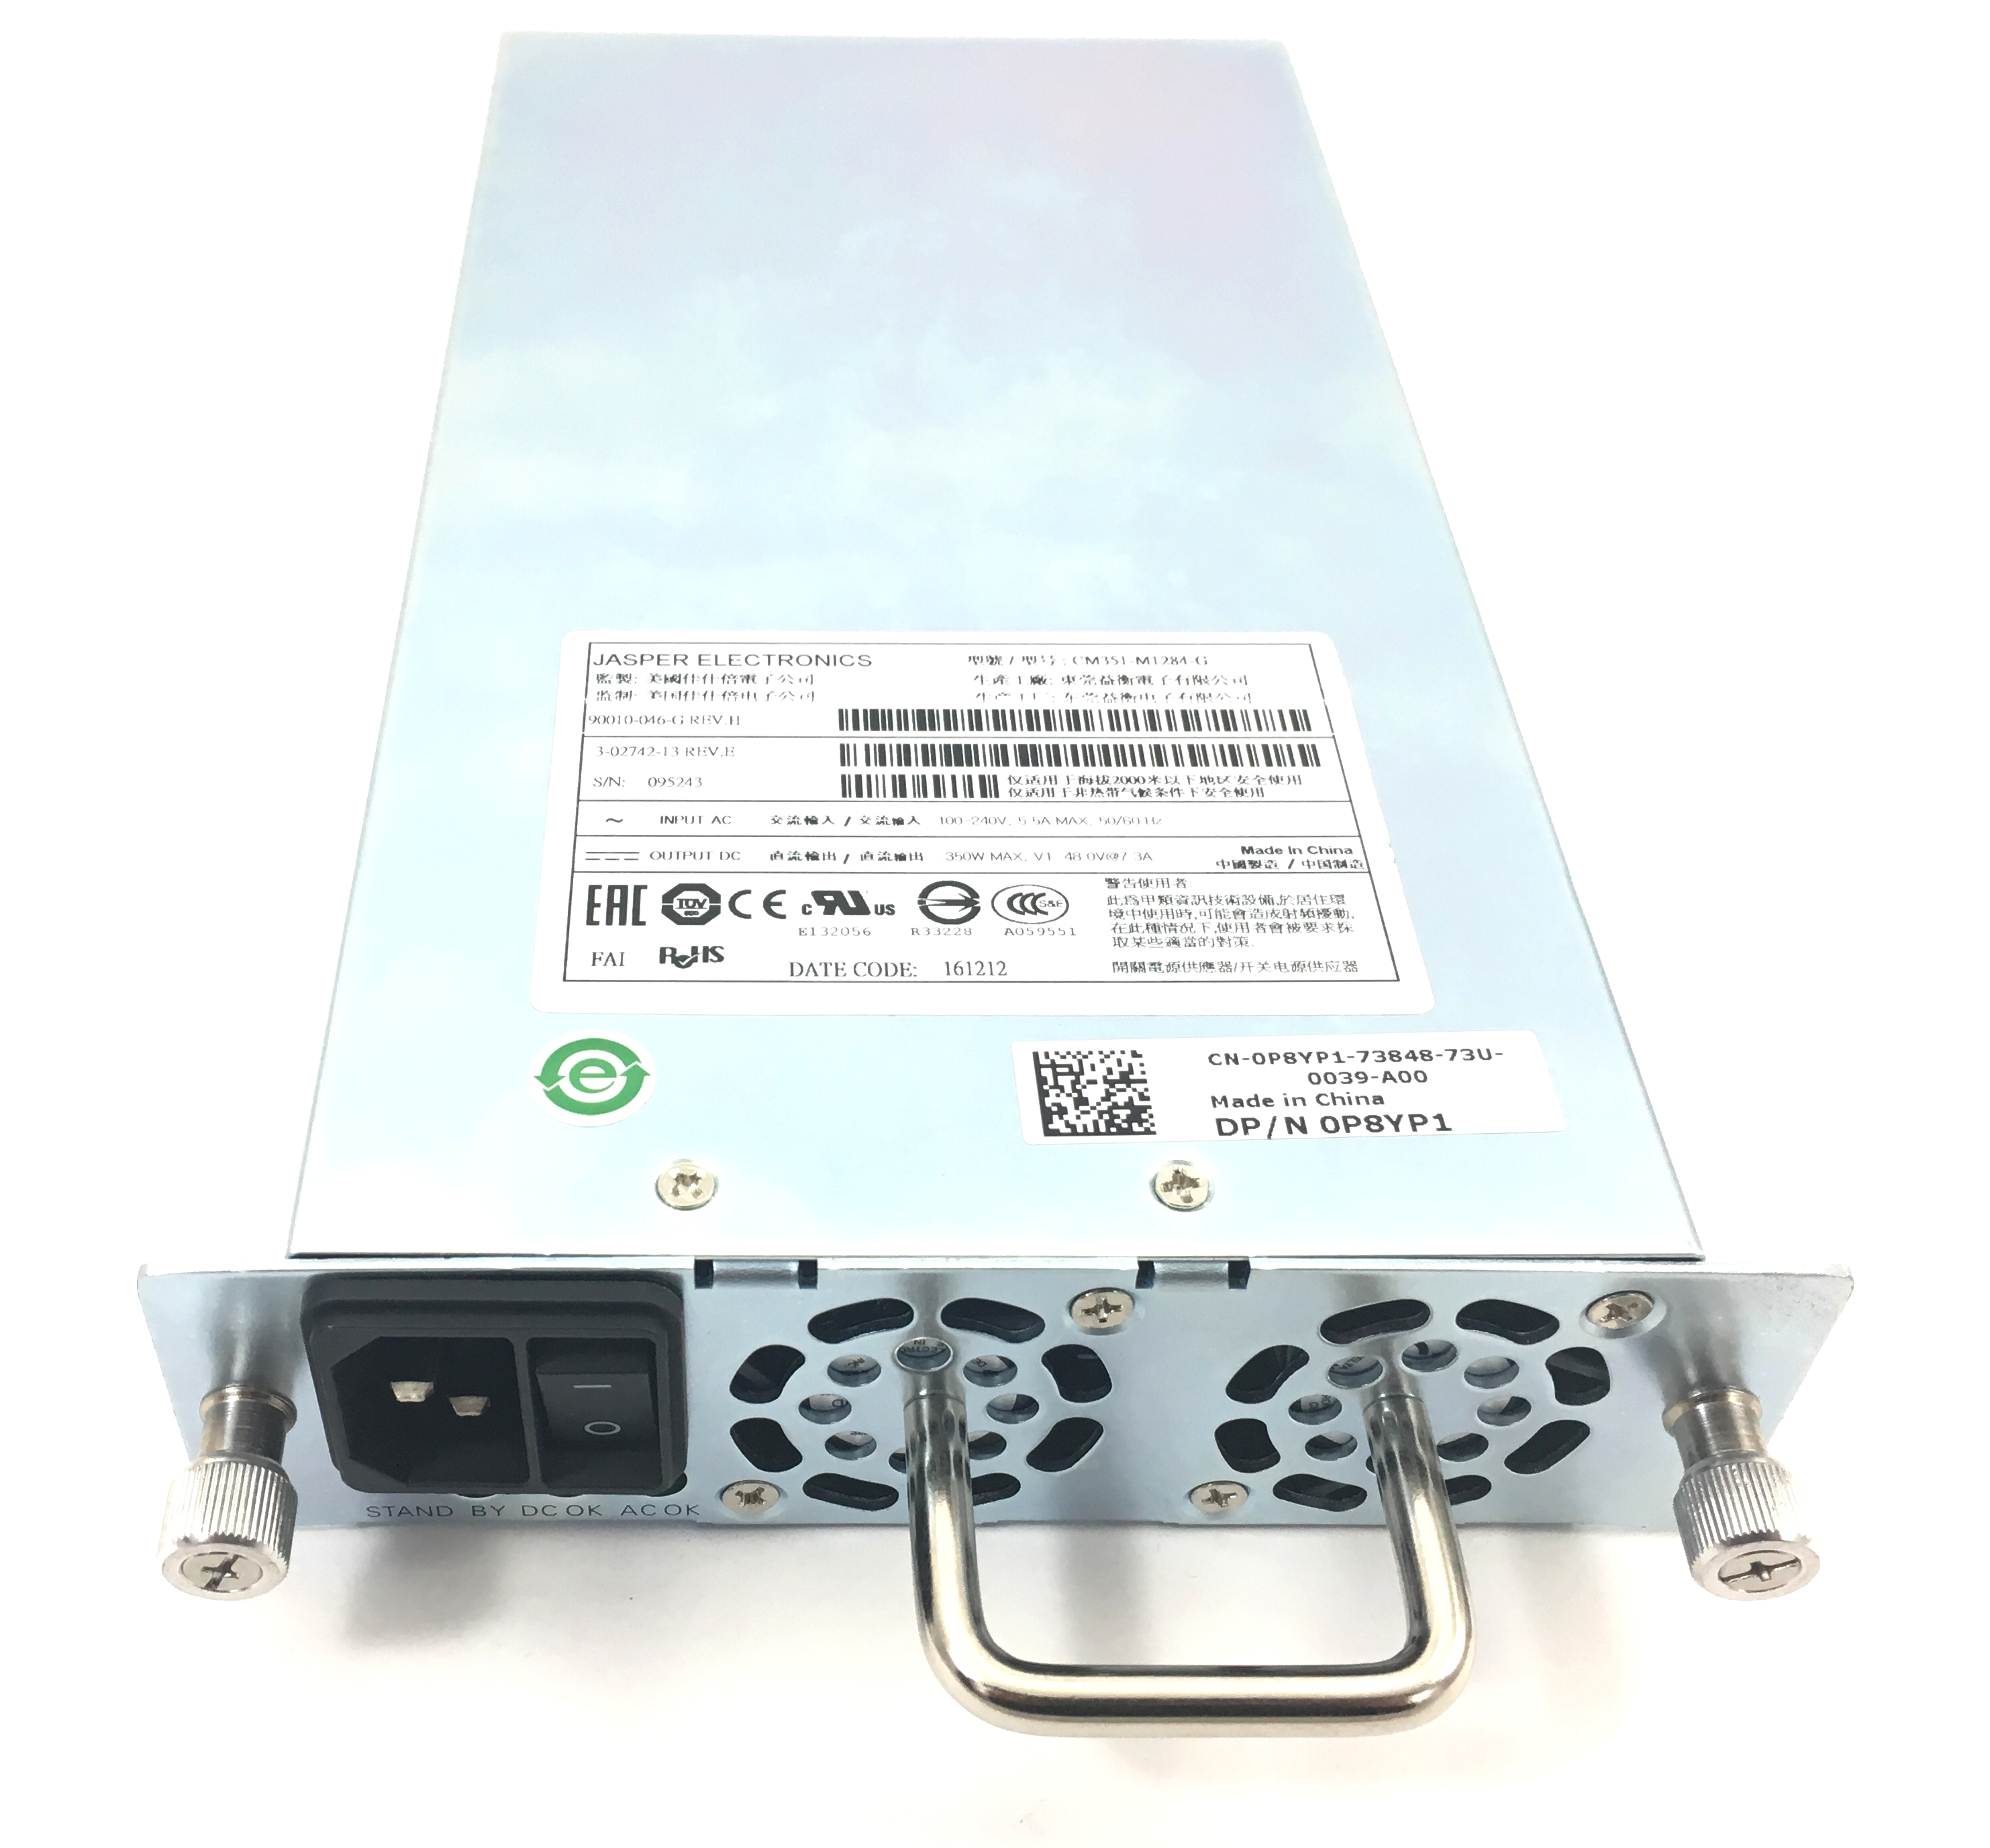 Dell Jasper 350W Power Supply For Ml6000 Tape Library (P8YP1)